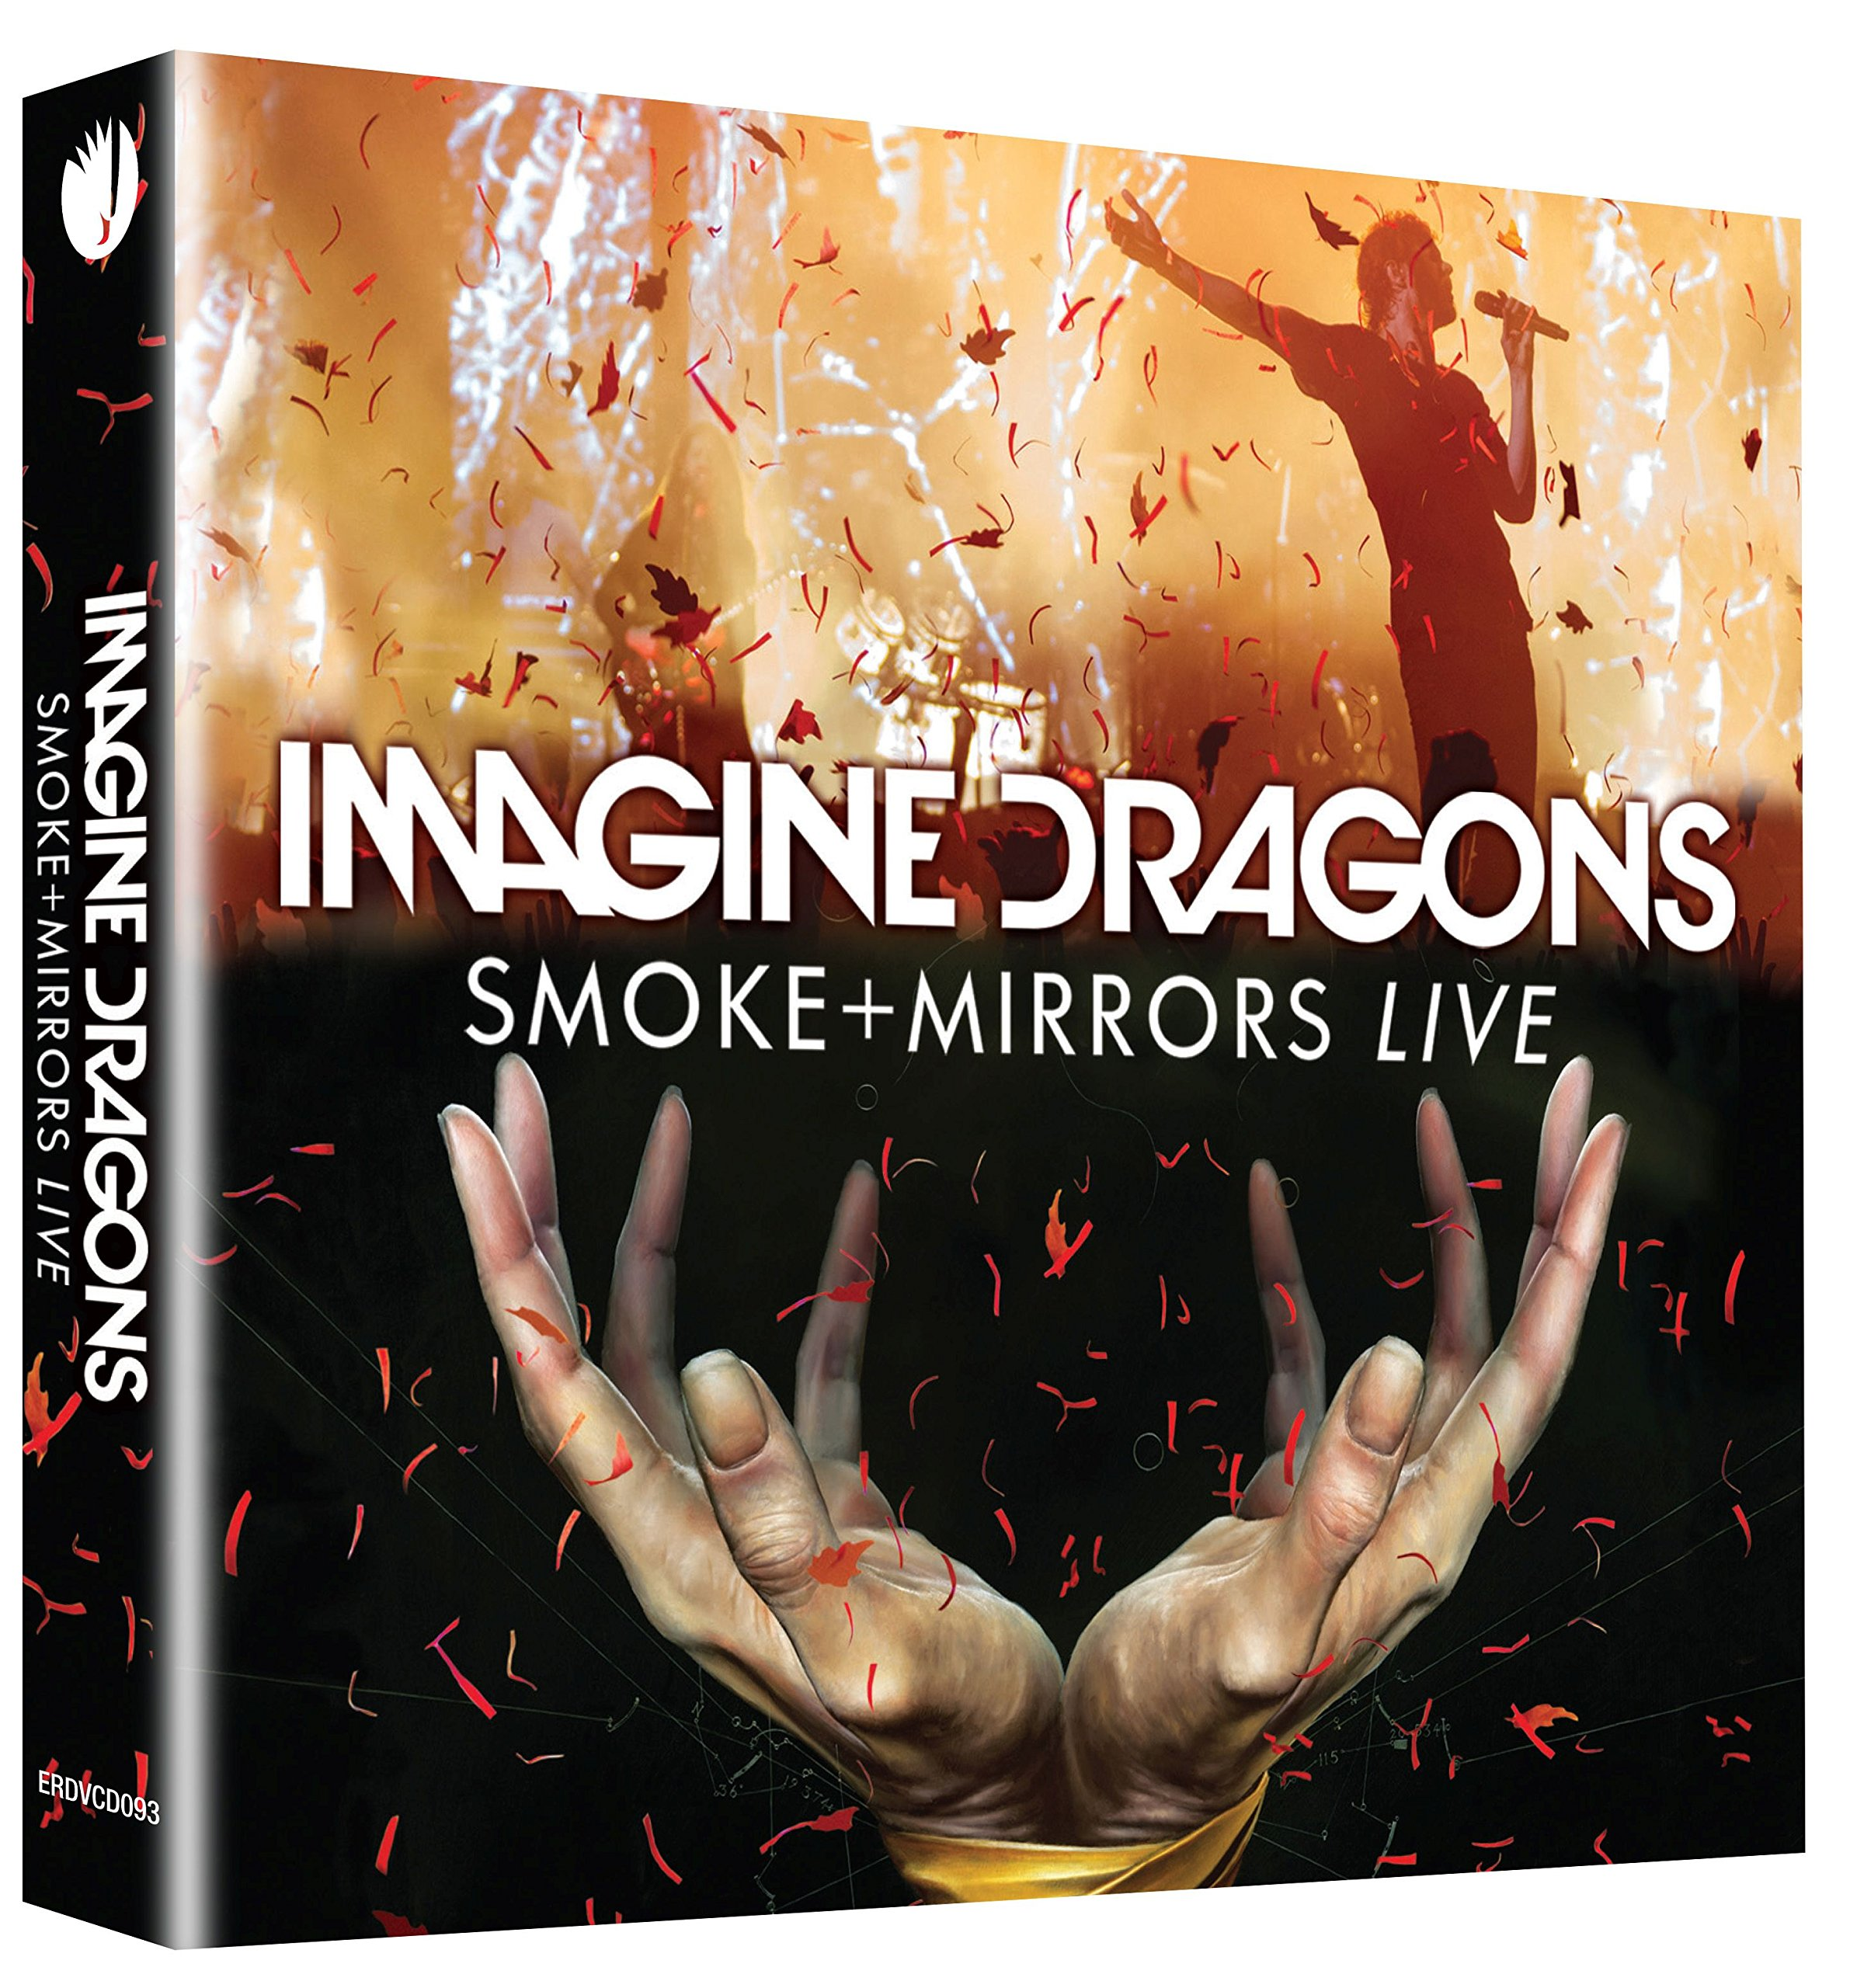 Blu-ray : Imagine Dragons - Smoke + Mirrors Live (With CD, 2 Disc)